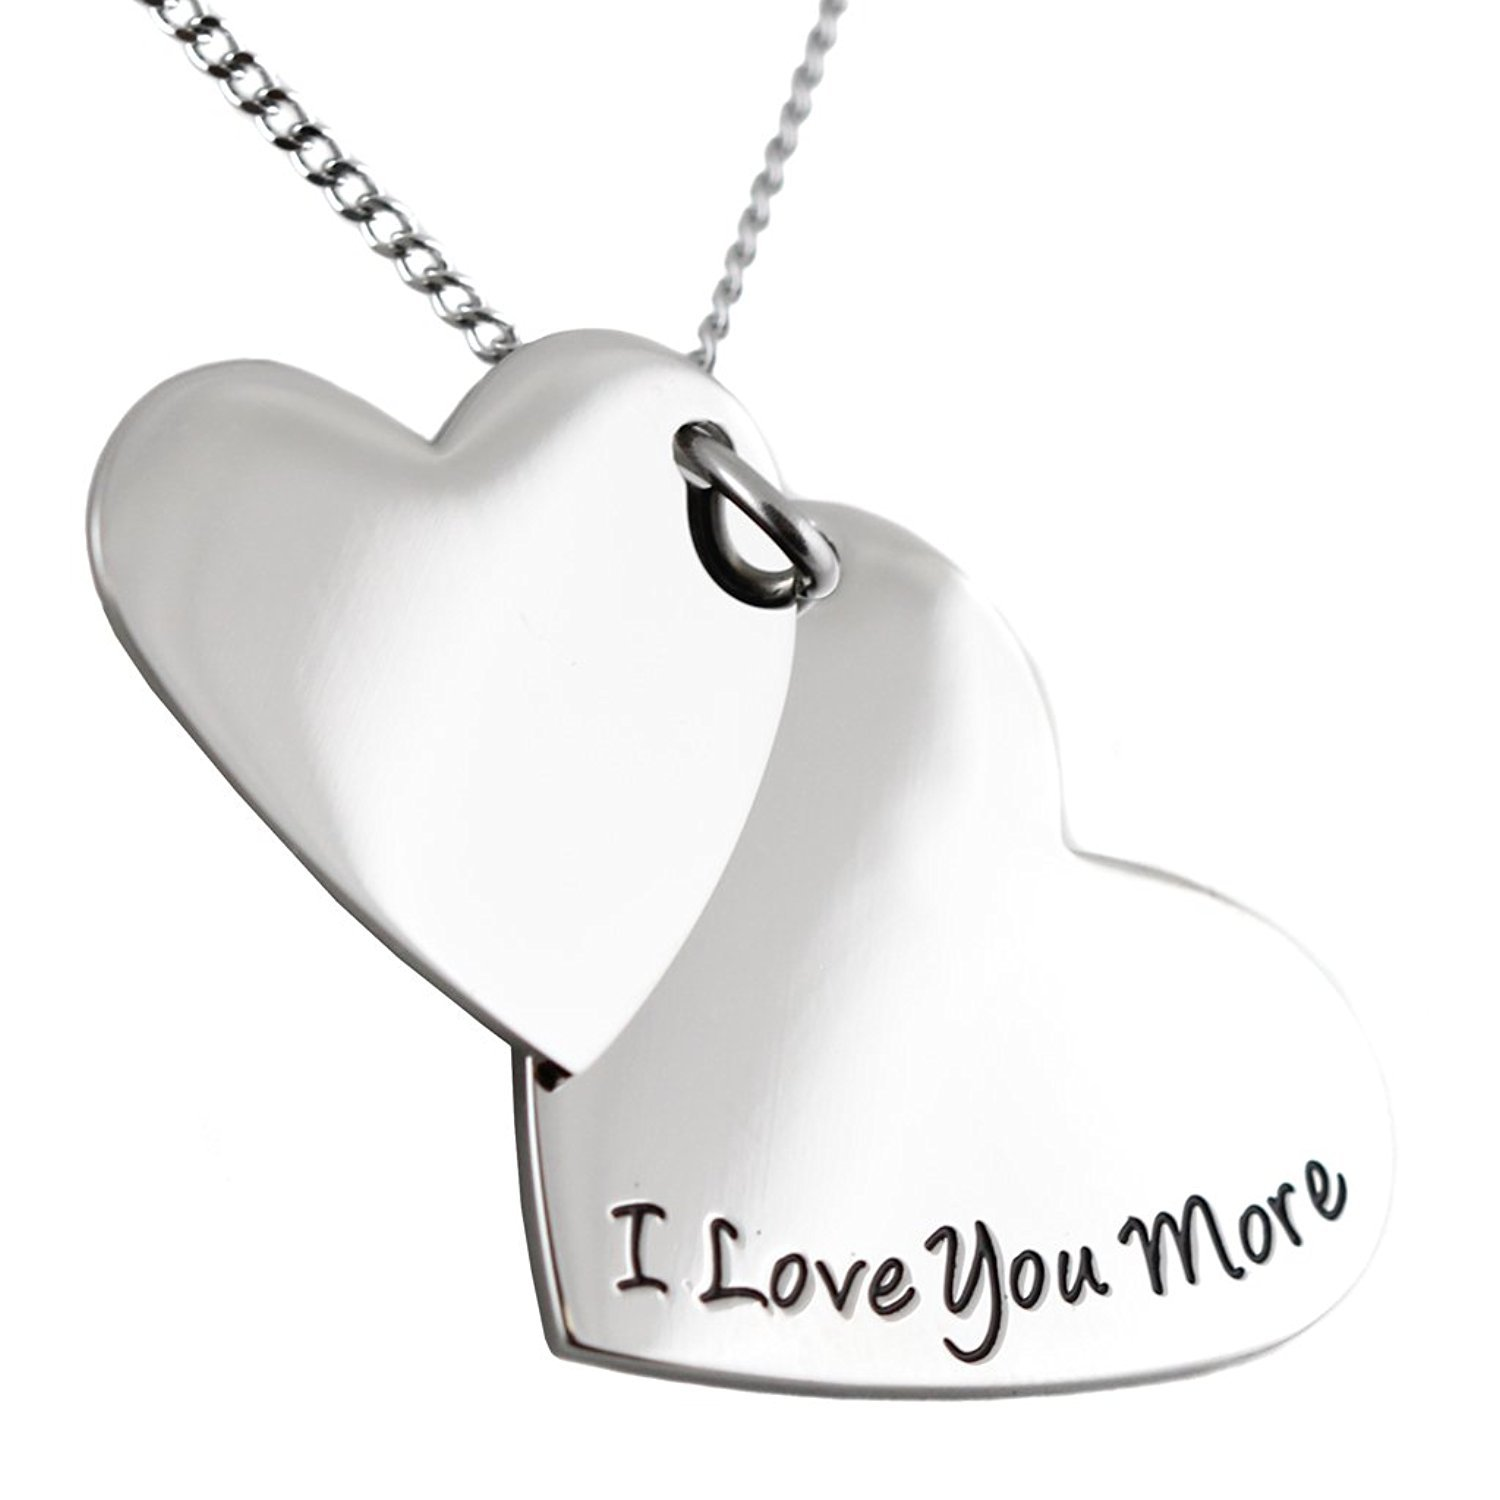 'Granddaughter, I Love You More' Pendant Necklace by Steal My Heart (Image #3)